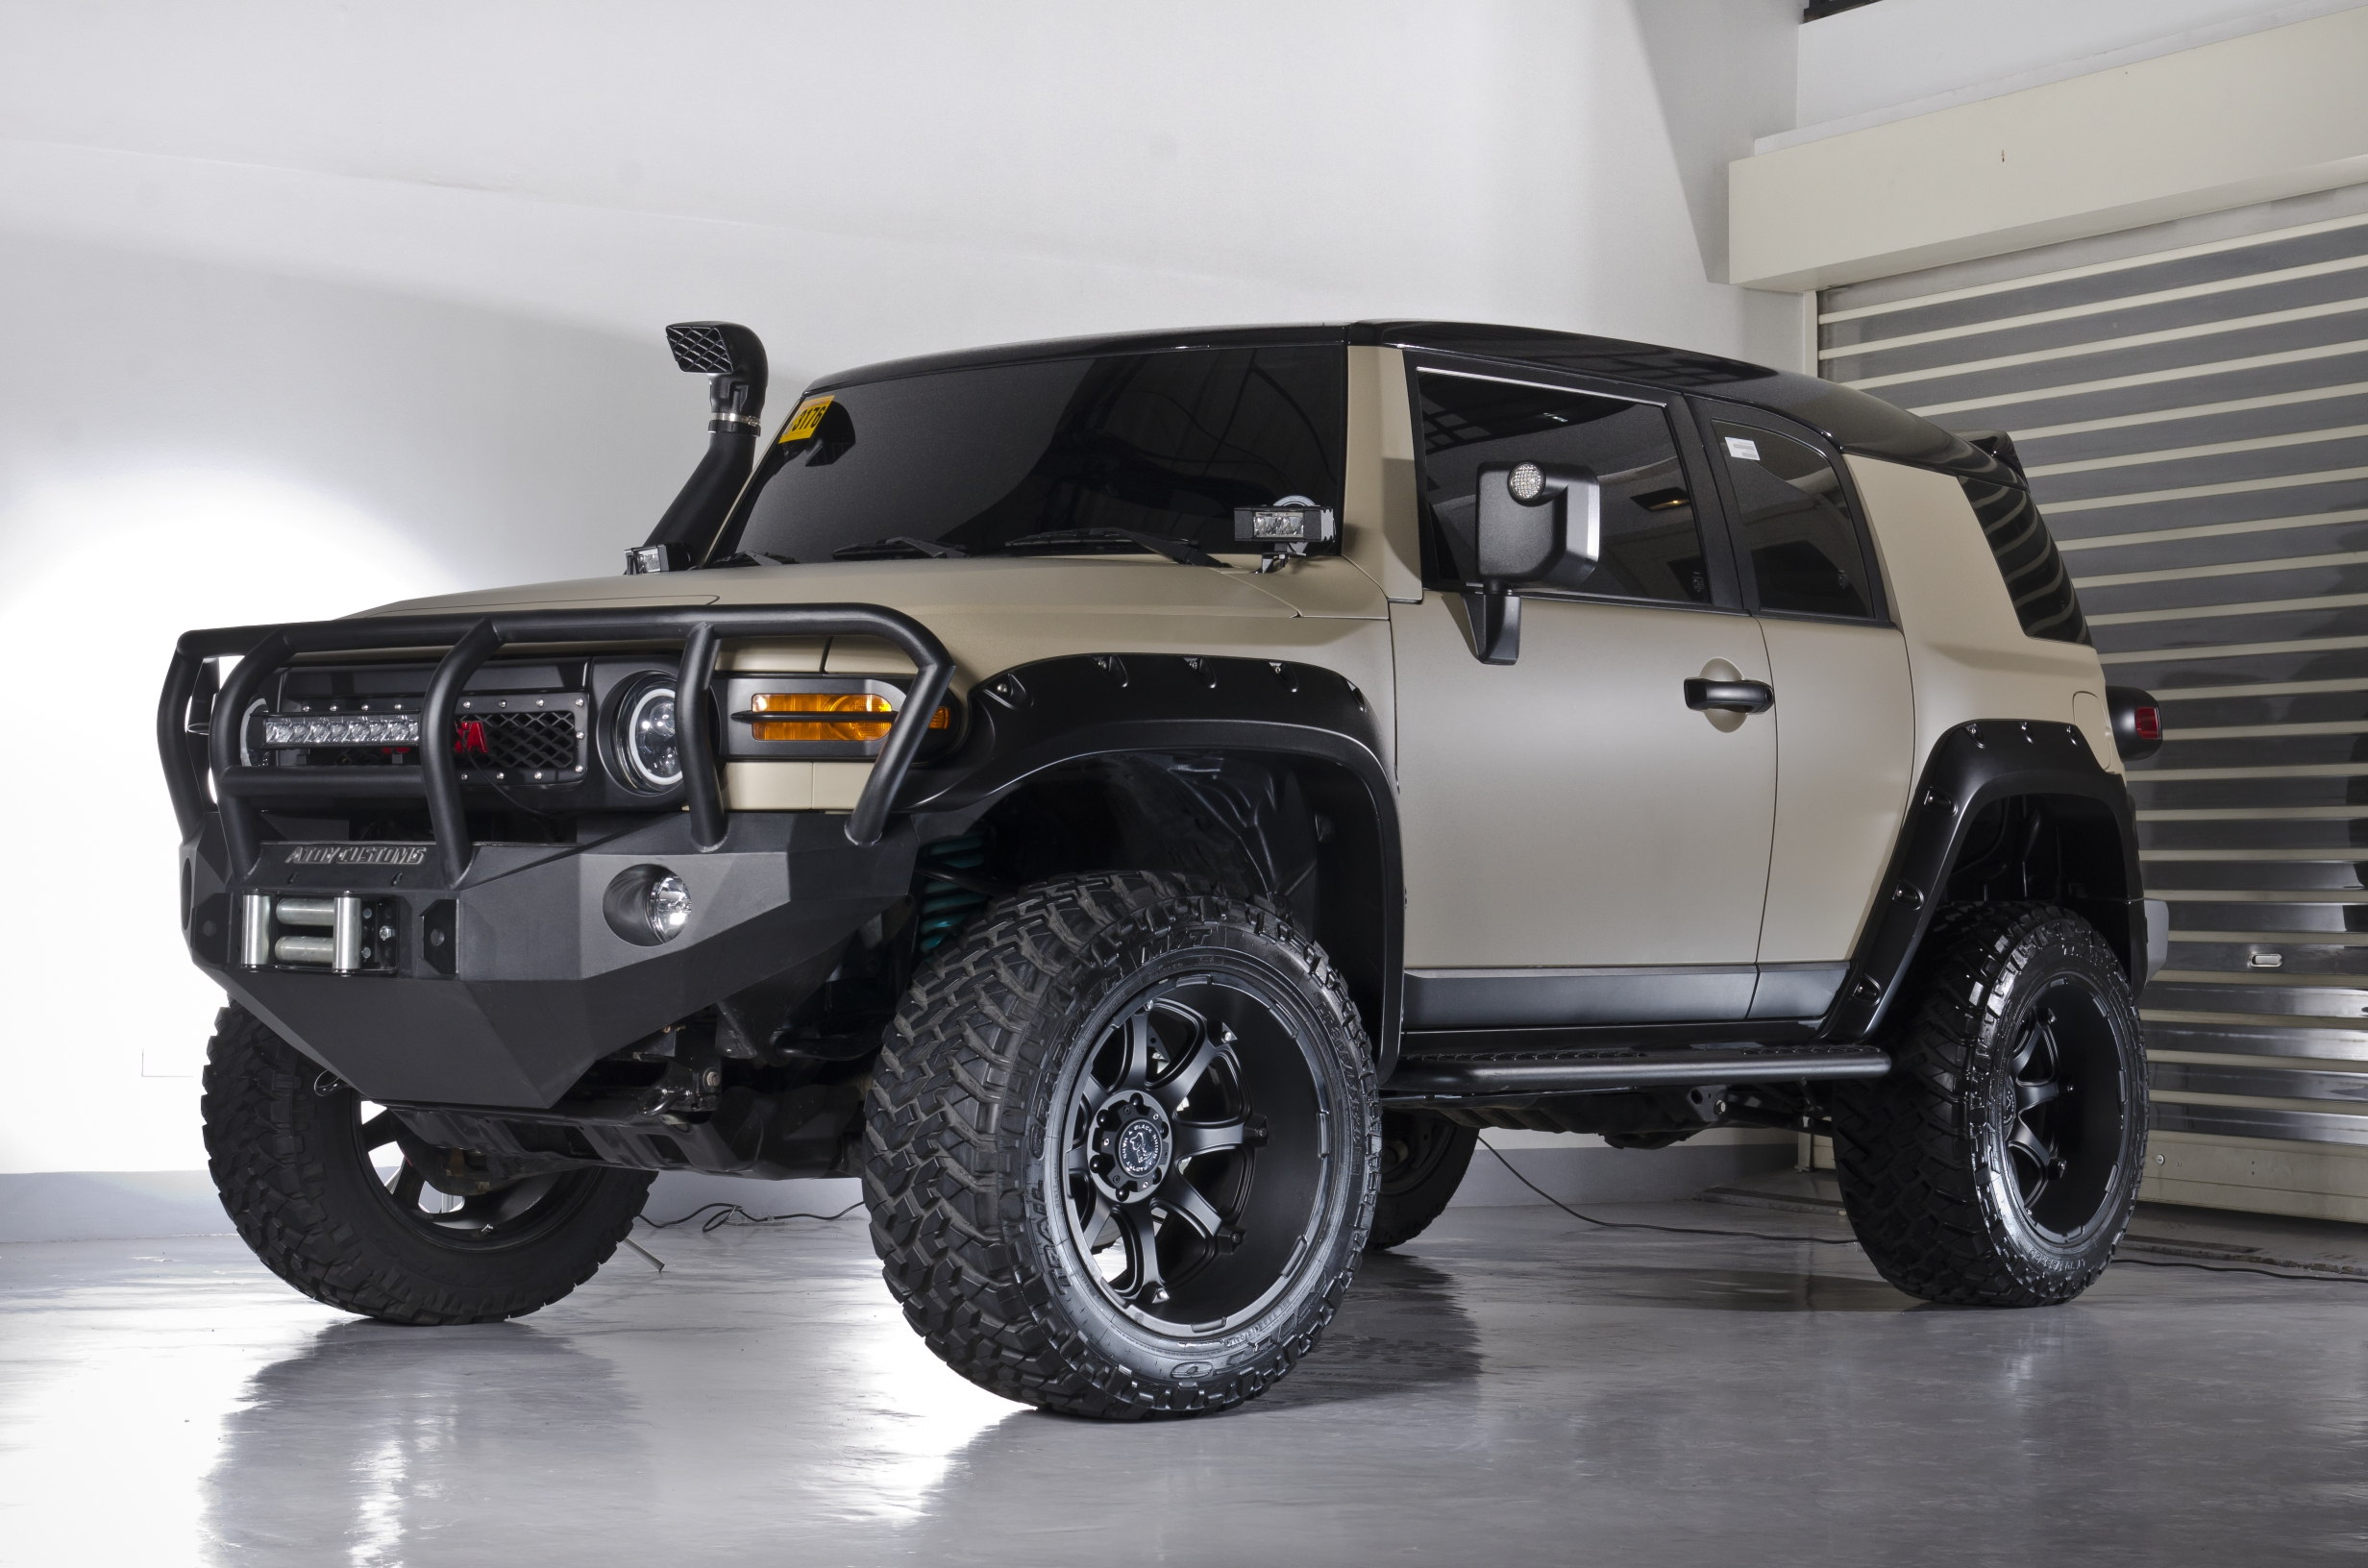 Stock To Rock The Toyota Fj Cruiser